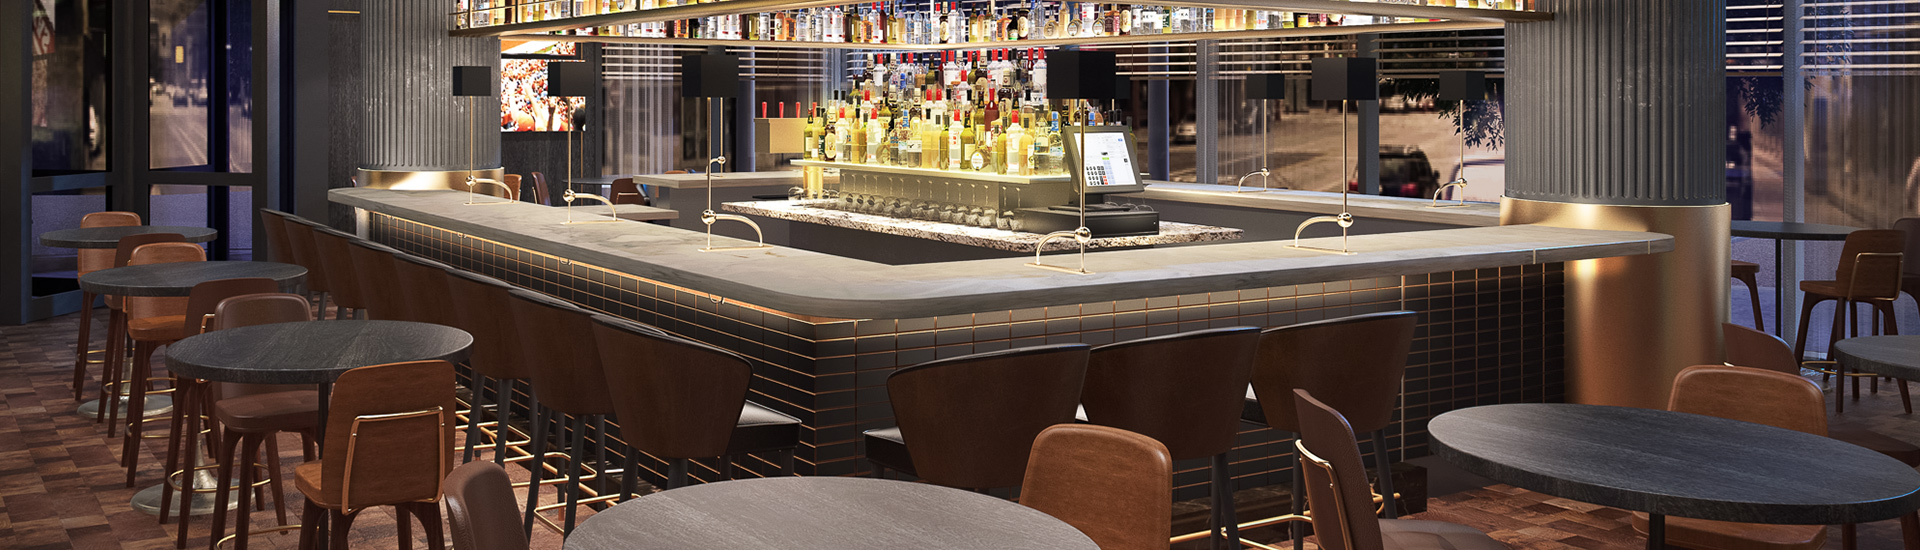 rendering of a bar area